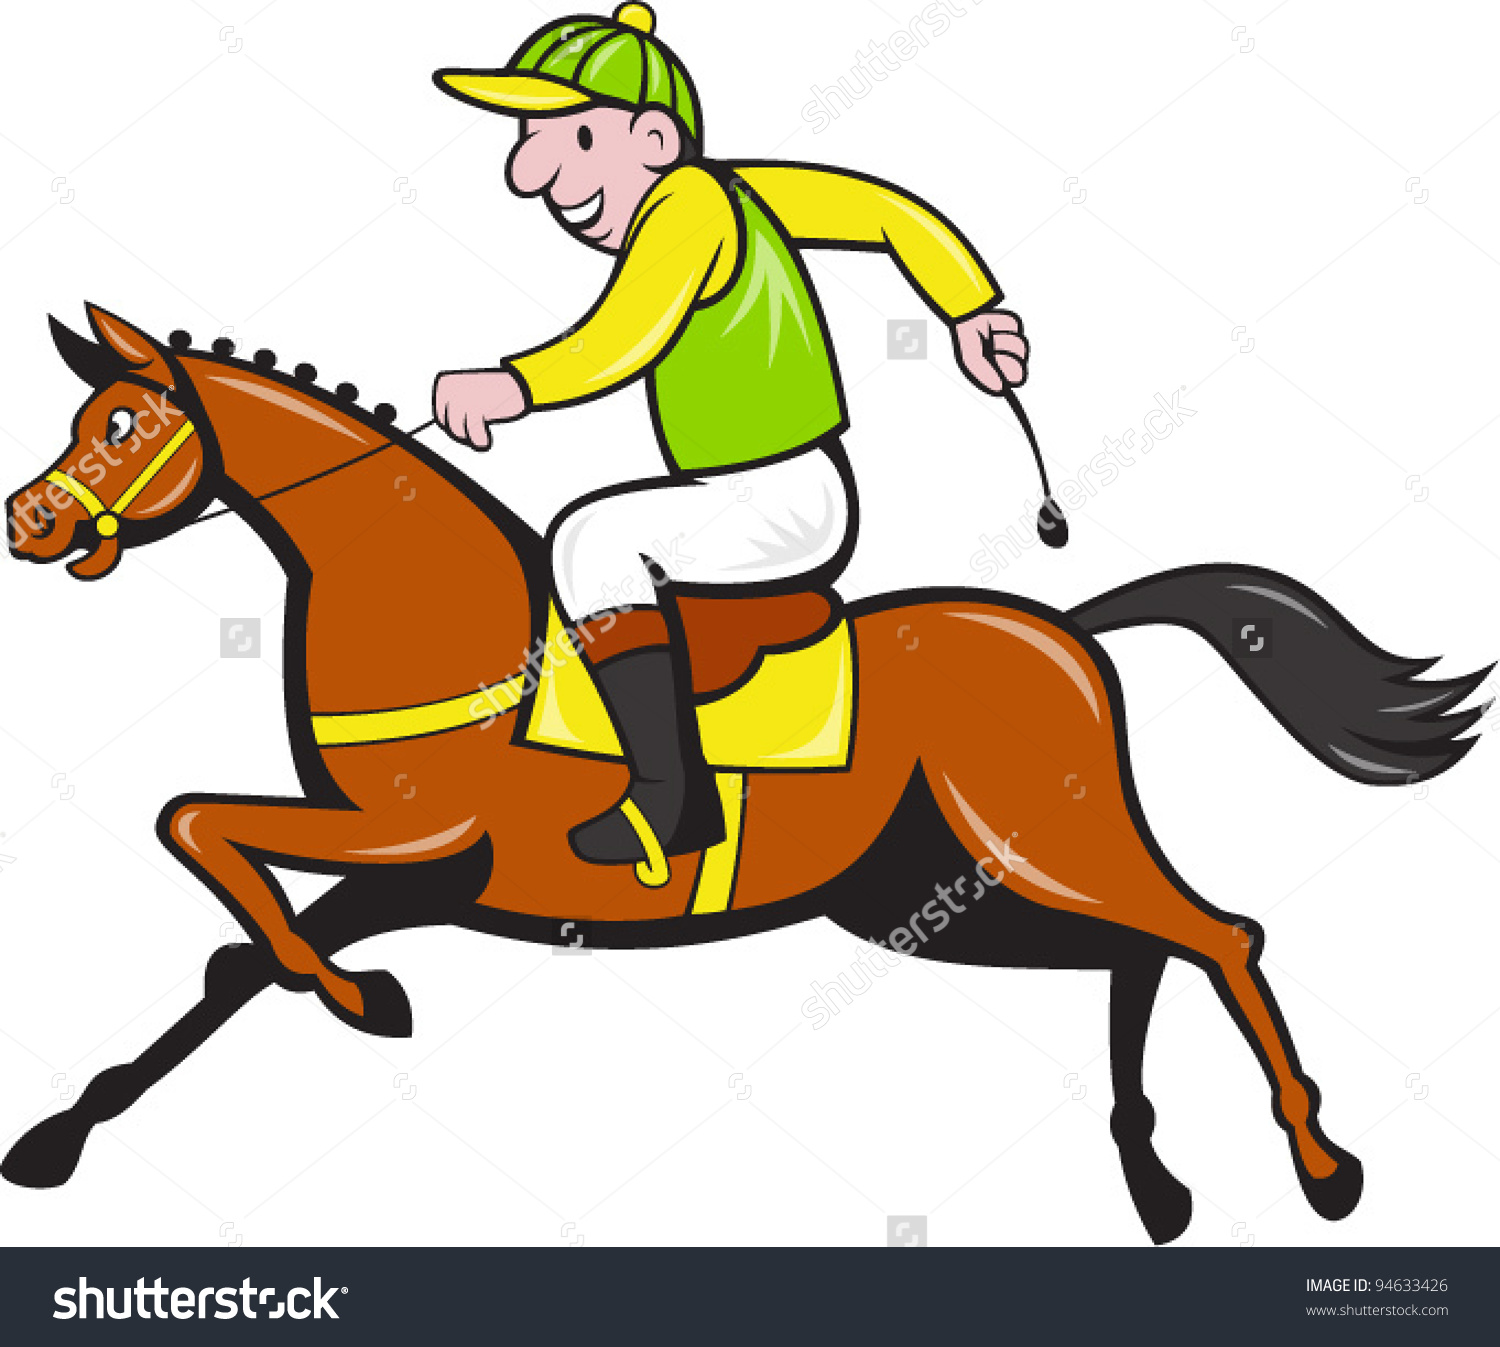 Vector Illustration Cartoon Horse Equestrian Jockey Stock Vector.